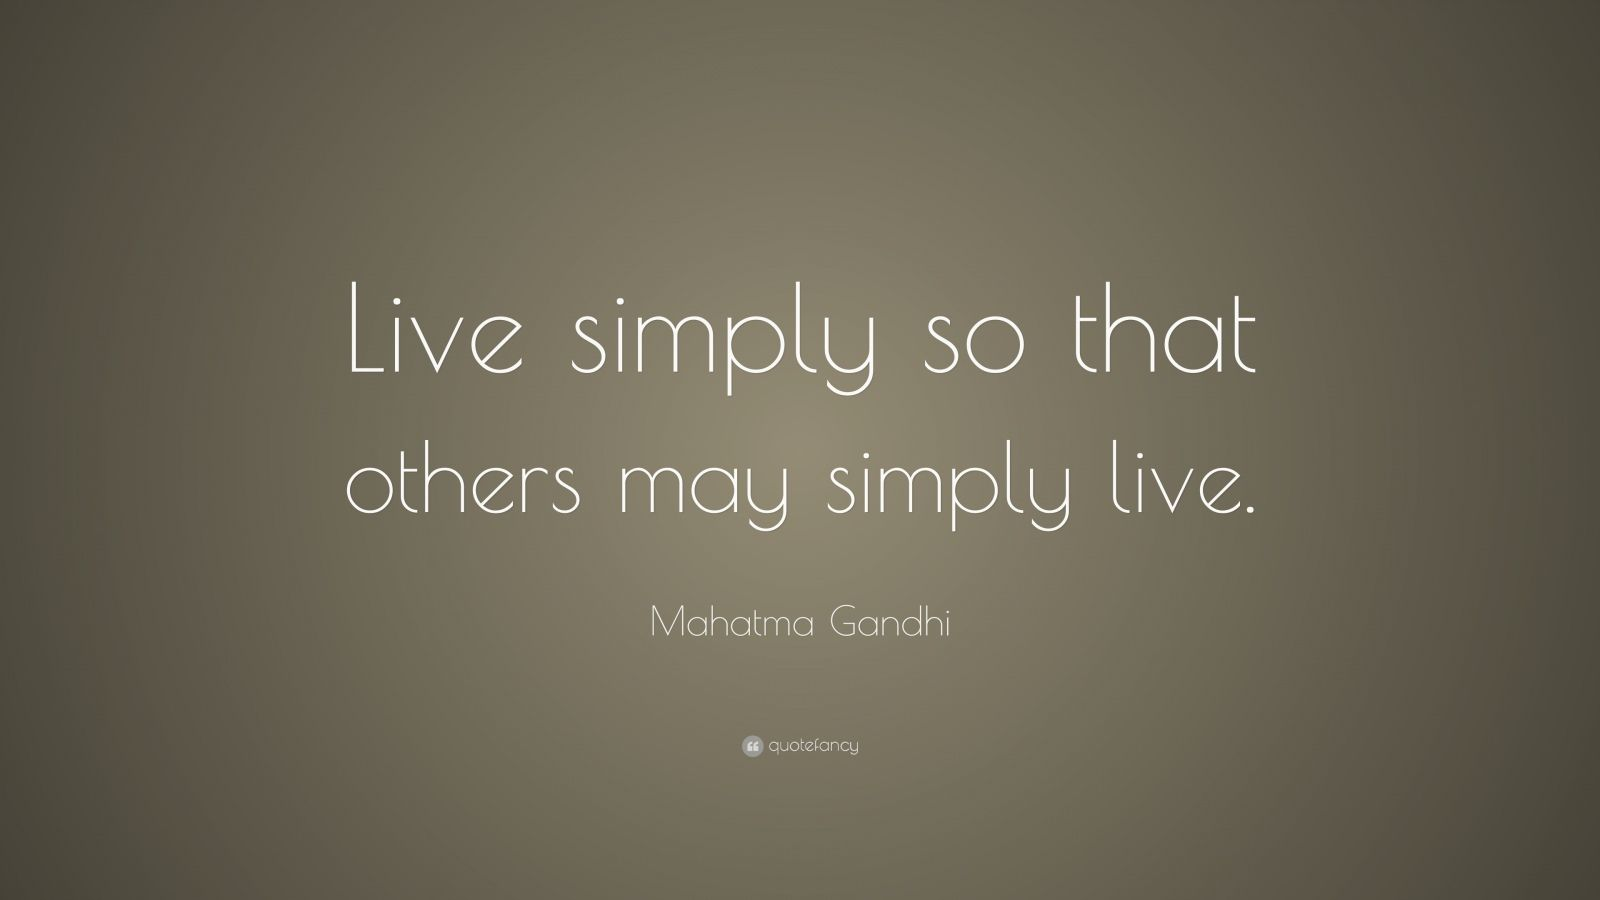 simple living high thinking of mahatama gandhi Rather the destiny lies along the bloodless way of peace which comes from a simple living and high thinking more about india of my dreams by mahatma gandhi essay.